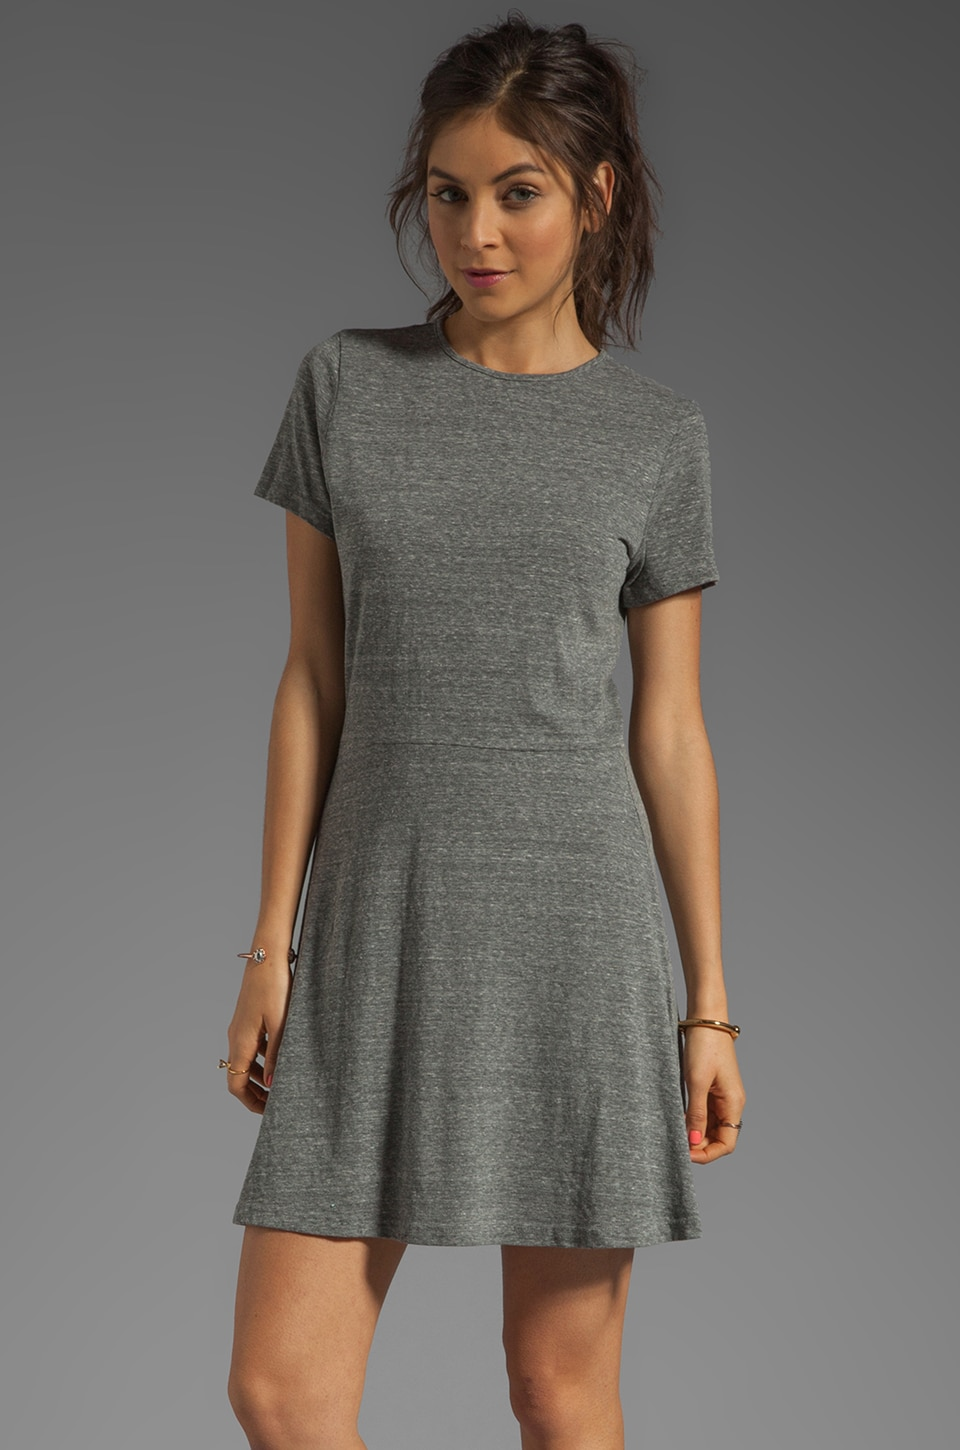 fLuXuS Triblend Sandra Dress in Heather Grey